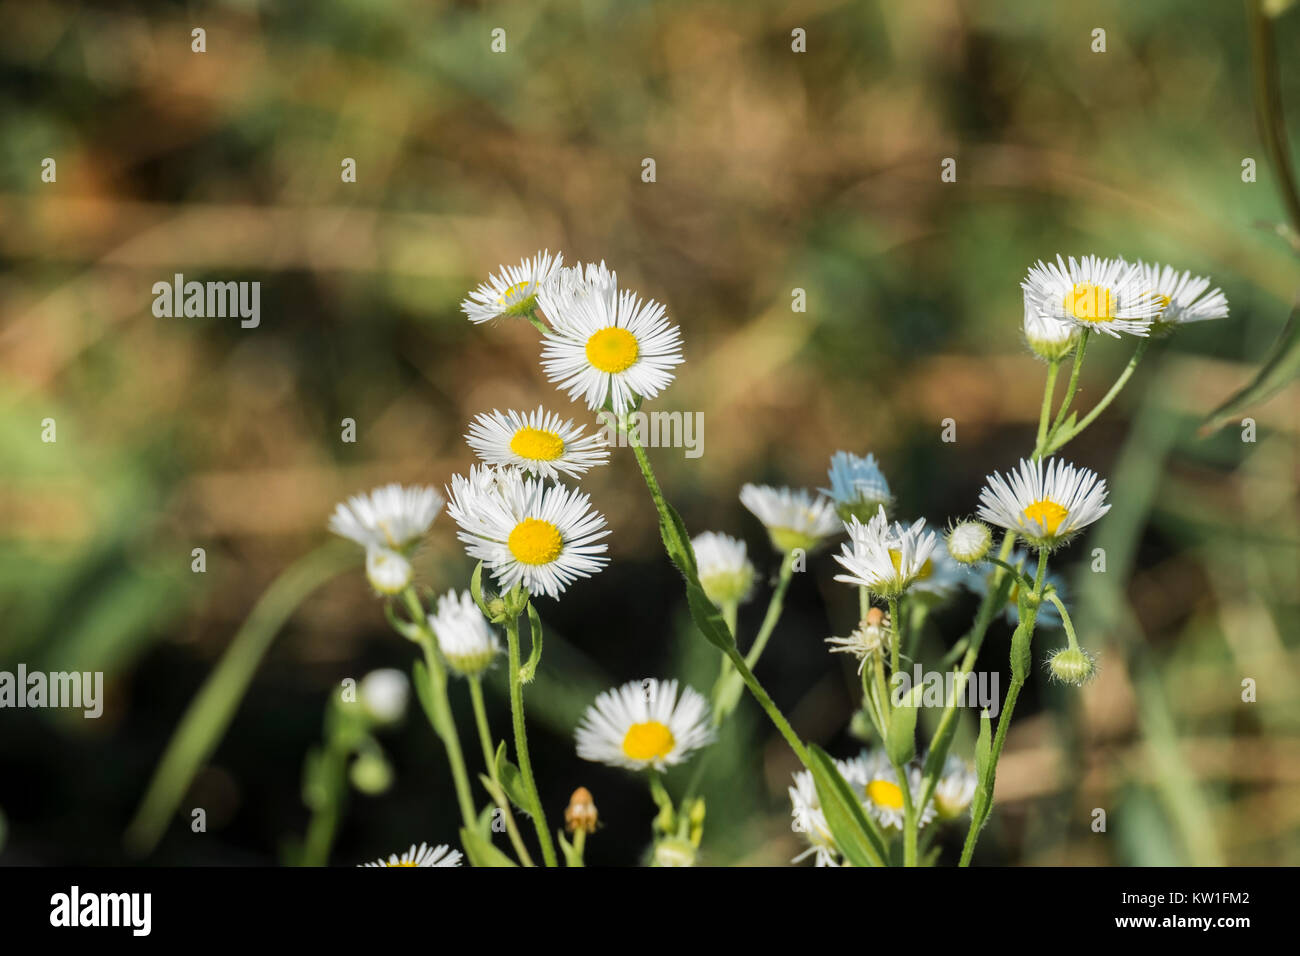 White flowers with yellow centers stock photos white flowers with miniature white flowers daisy fleabane with small petals and yellow centers erigeron annuus mightylinksfo